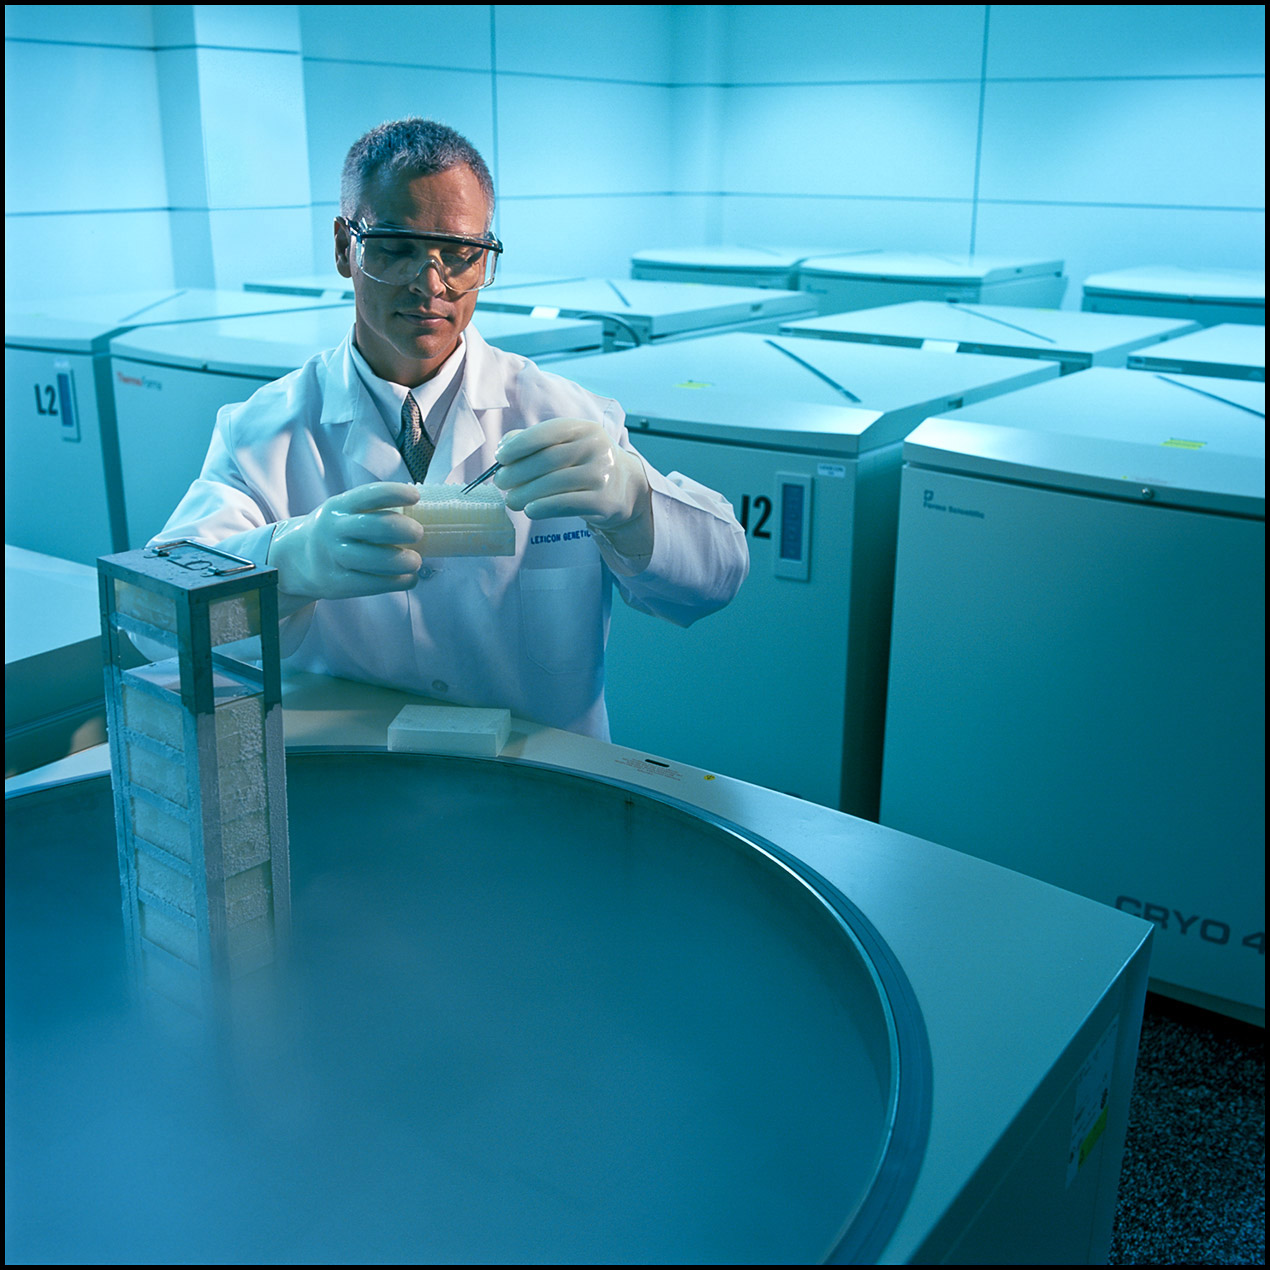 A researcher accesses frozen DNA samples in a room full of cryogenic vaults.